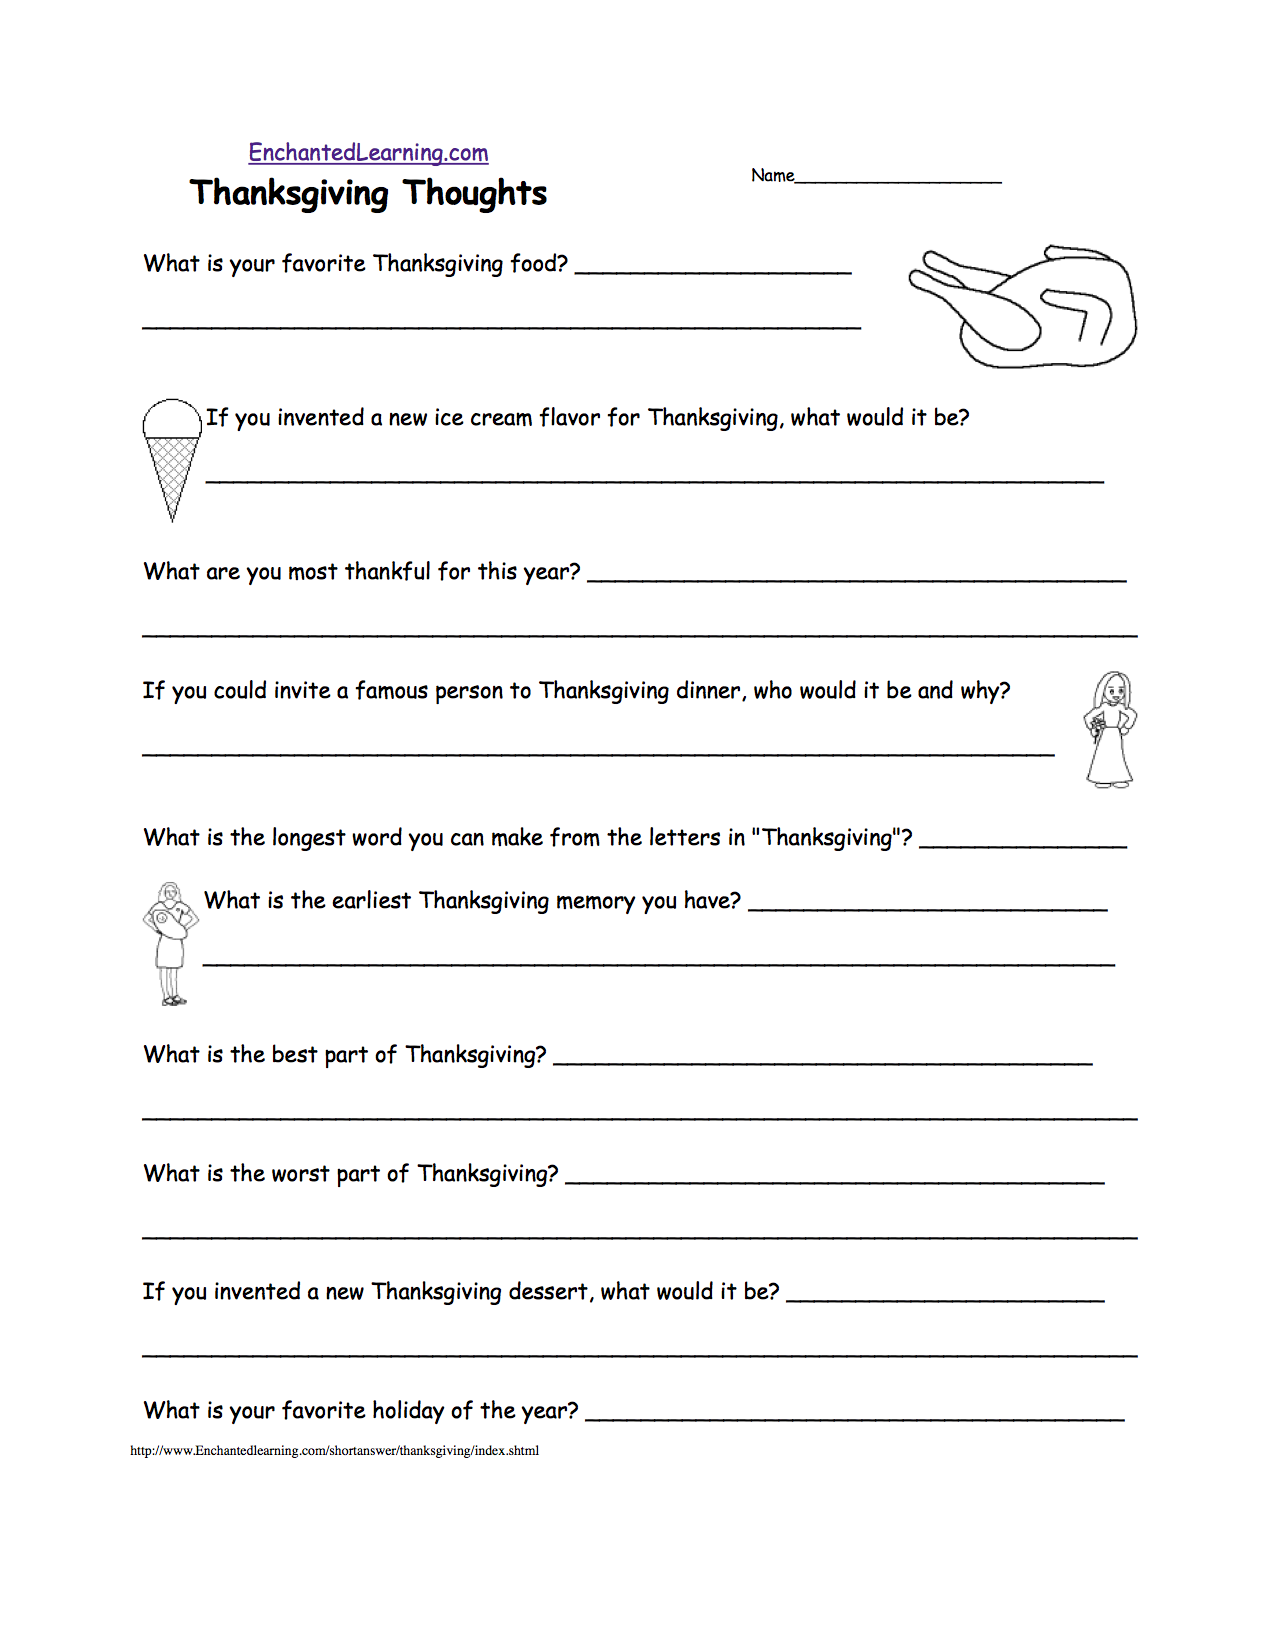 Worksheets Thanksgiving Worksheets For First Grade thanksgiving crafts worksheets and activities thanksgiving